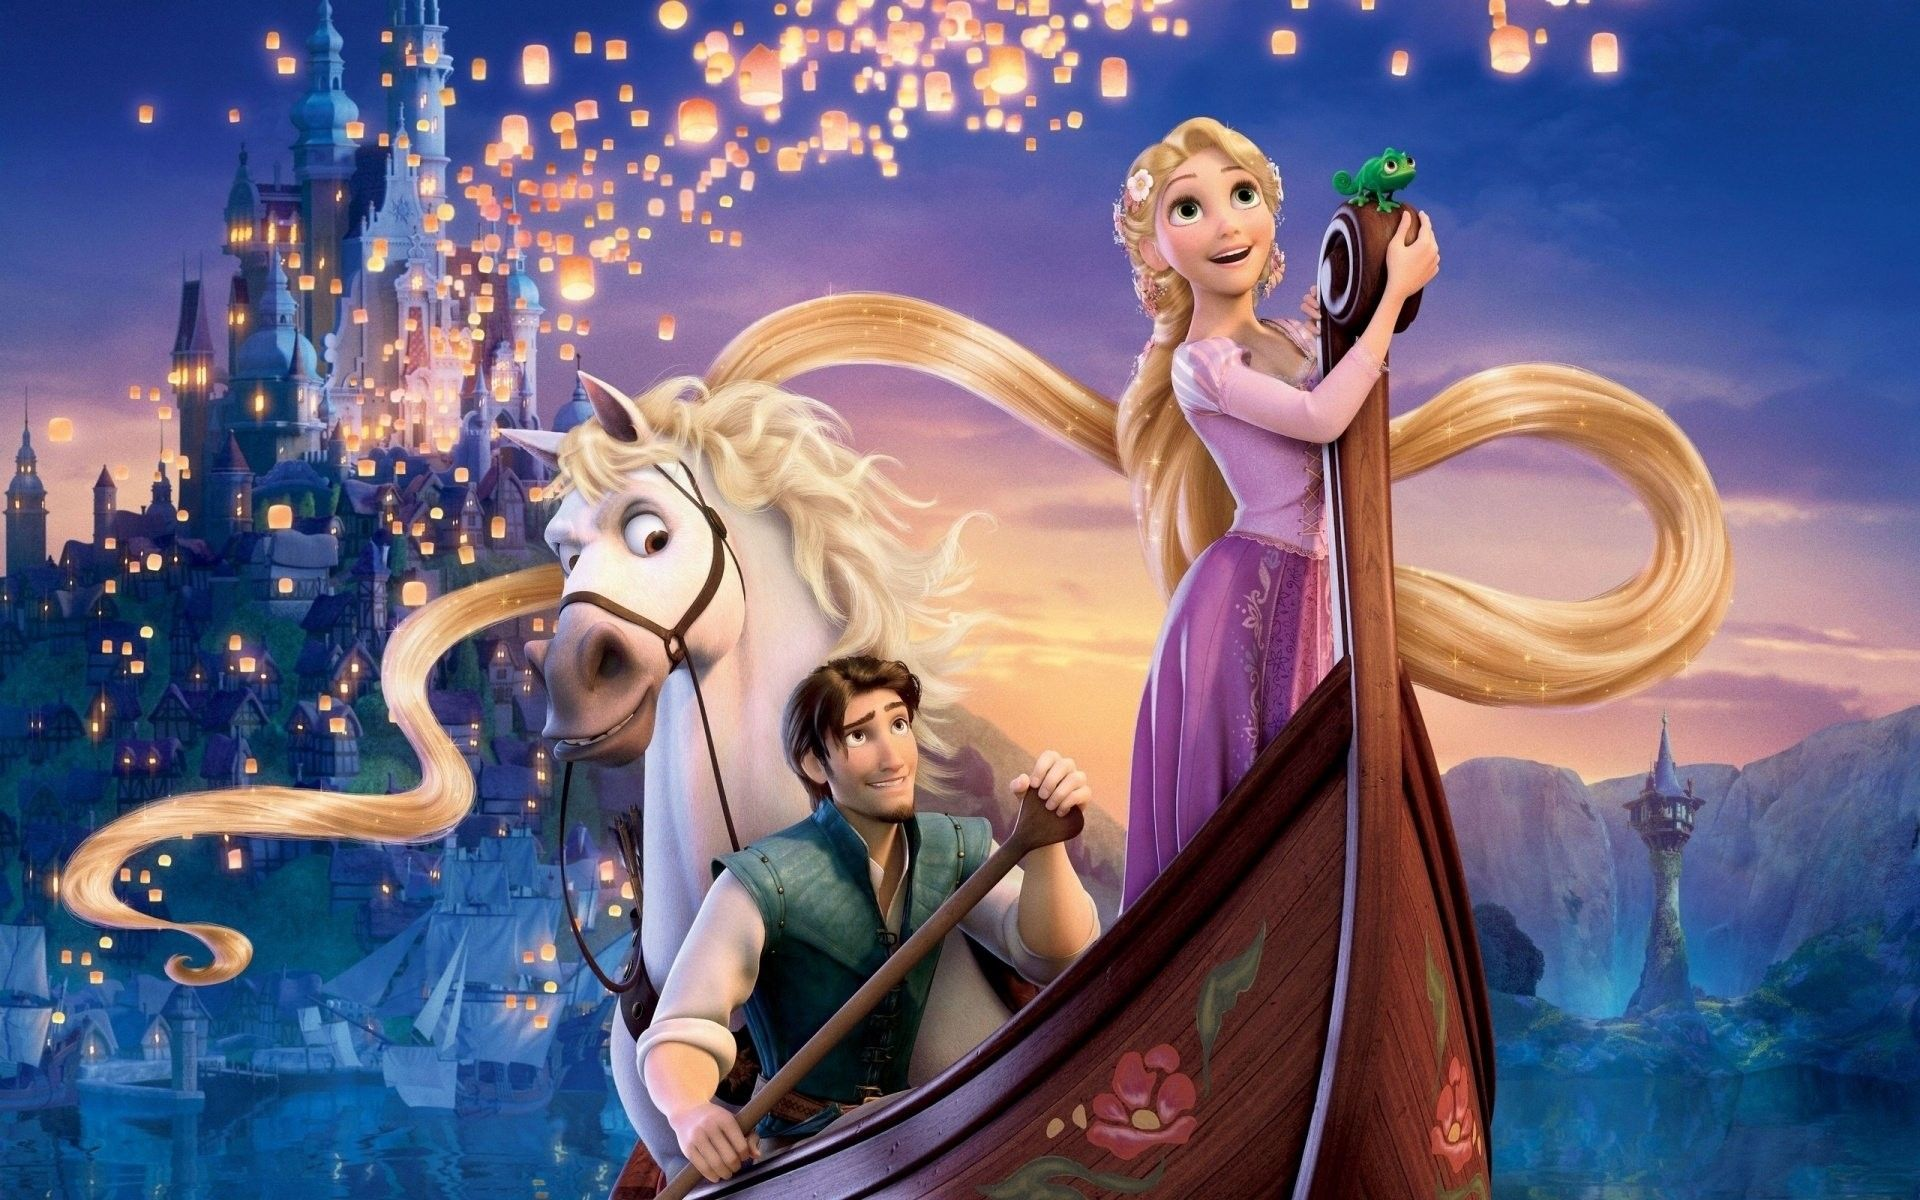 Rapunzel Wallpaper Designs You Can Use on Any Part of Your Computer